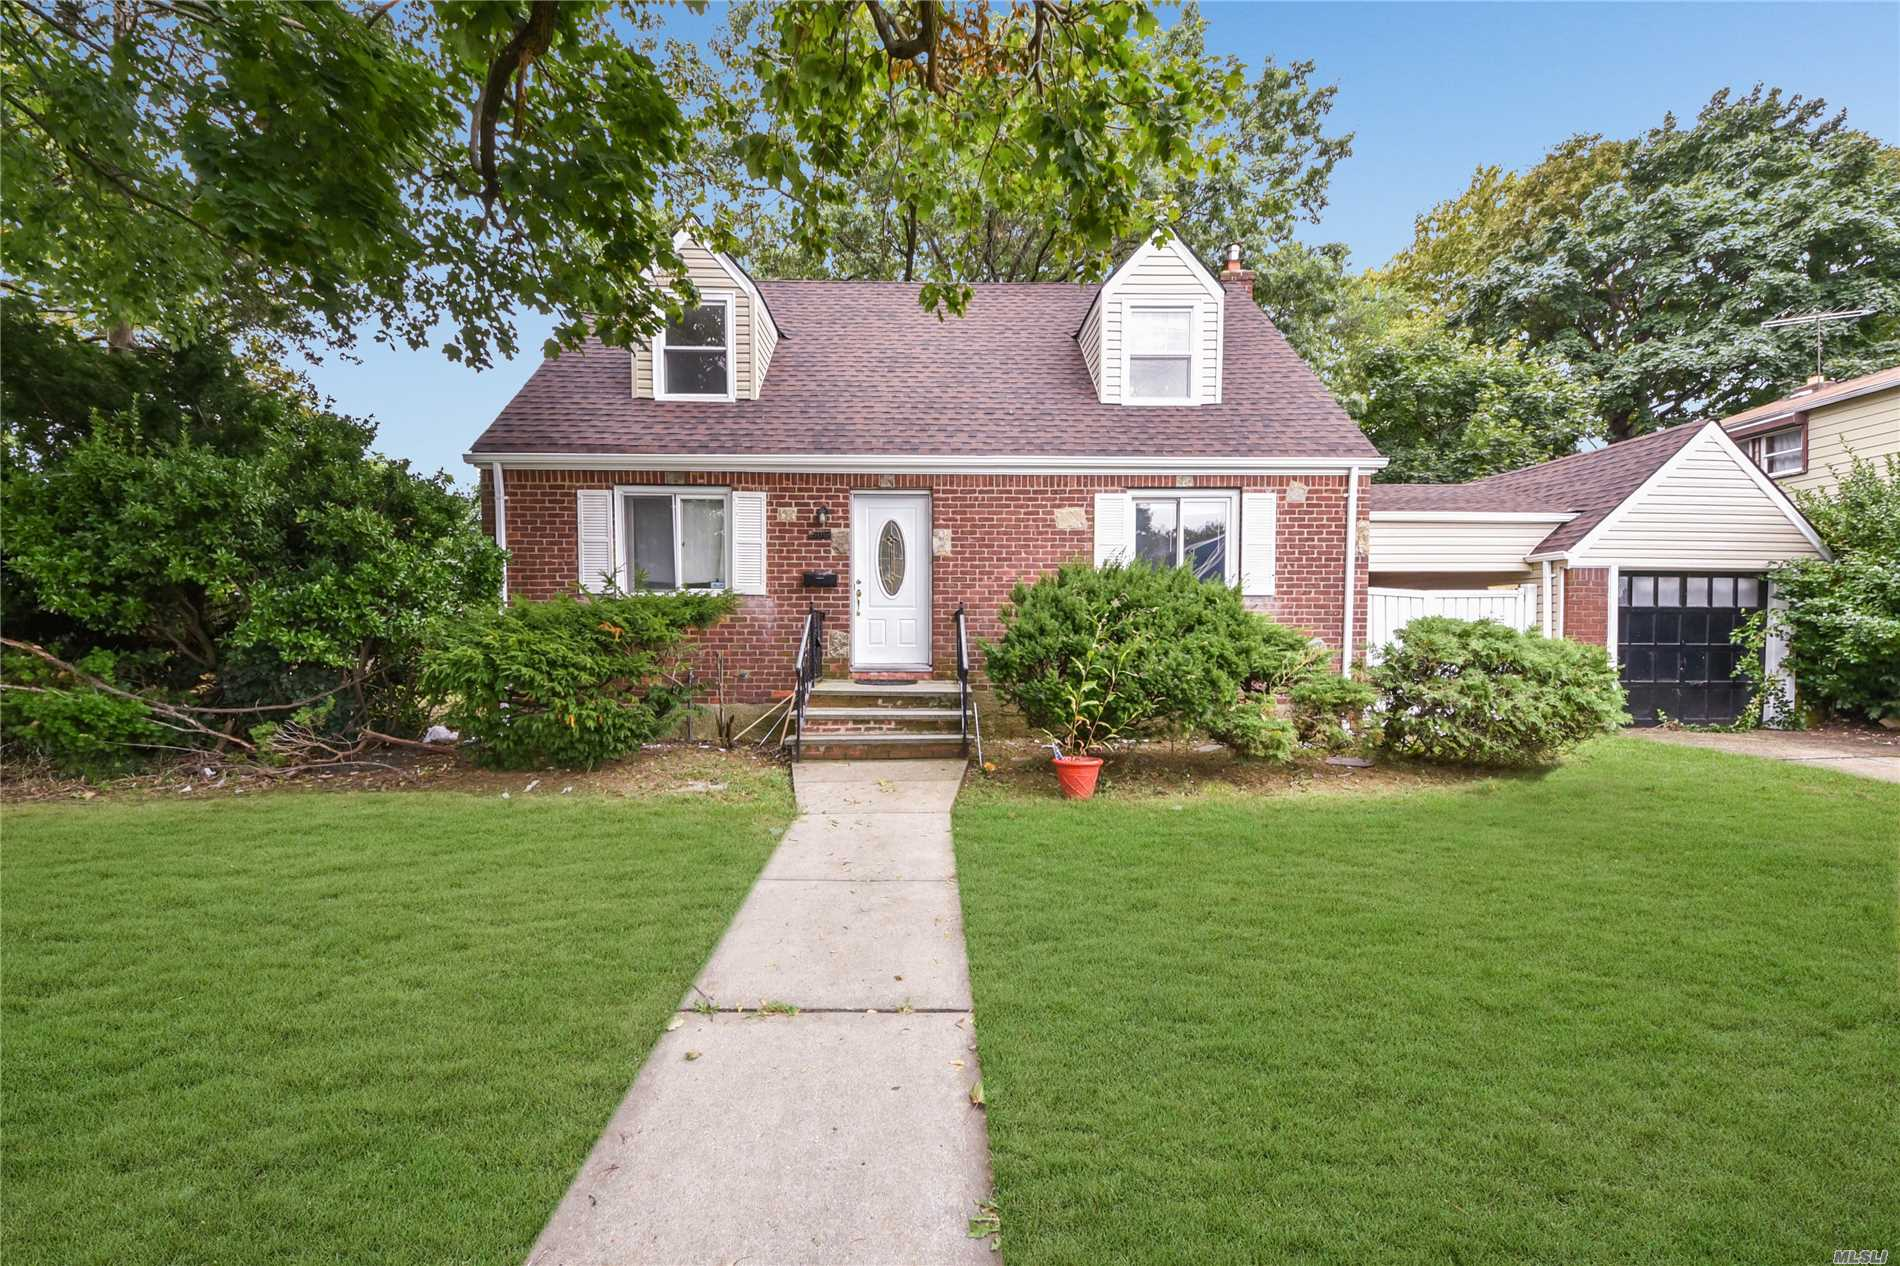 Uniondale. Beautifully Renovated Siding/Brick Home. Large And Sunny, Like New! New Bathrooms, New Kitchen, New Roof And Gutters. Central Ac, Gas Cooking. Full Finished Basement With High-Ceilings And Hardwood Floors! A Must See Home!